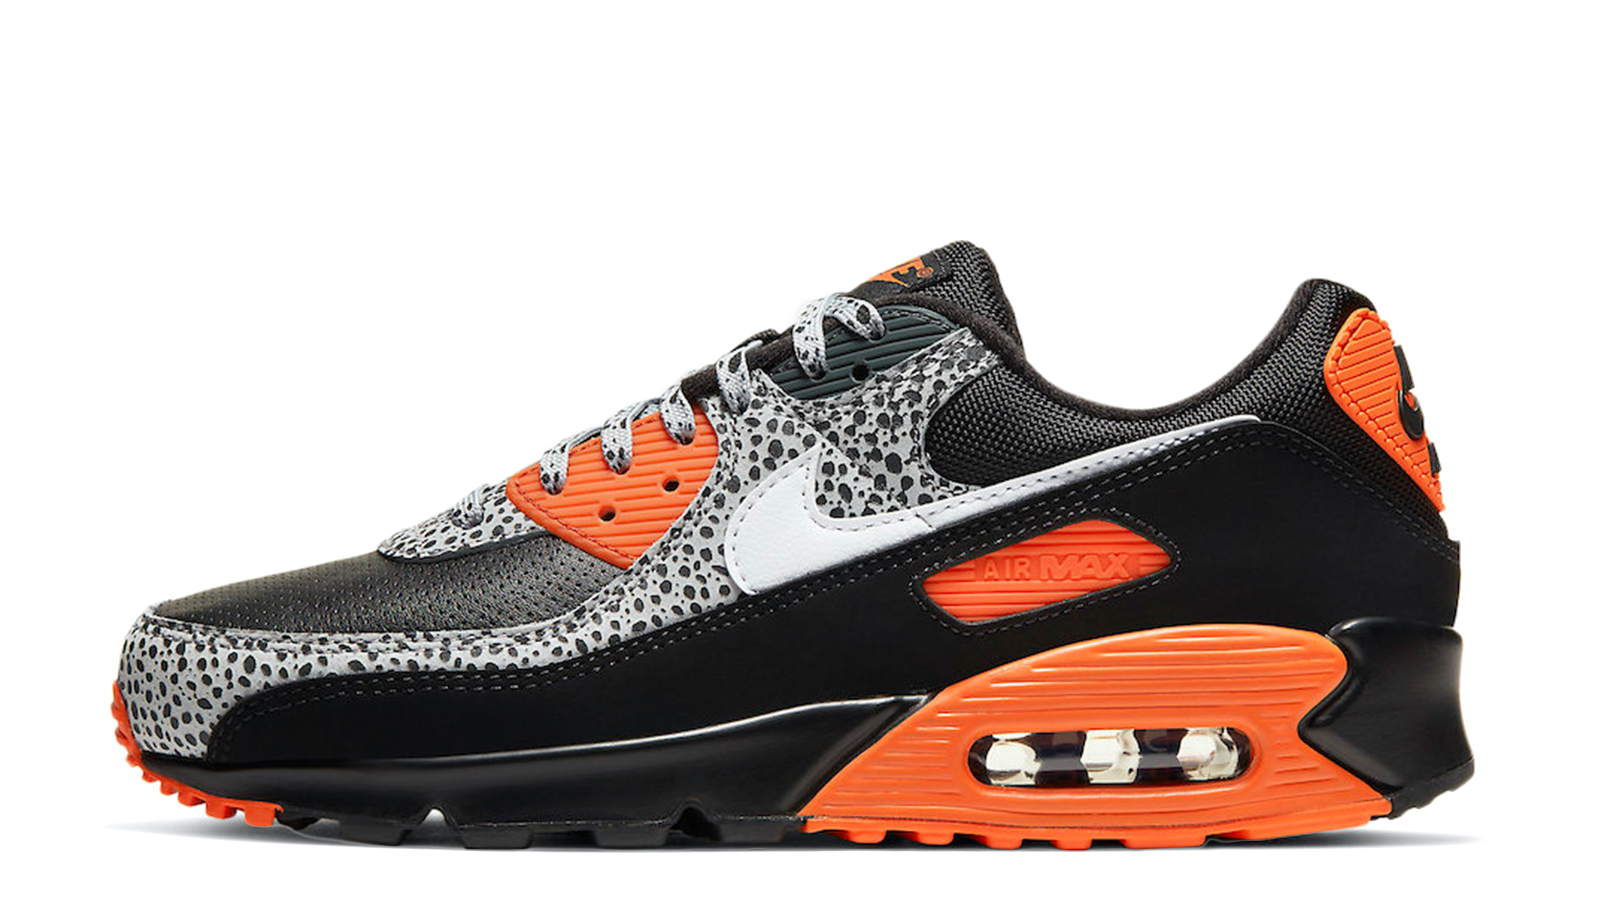 Nike Air Max 90 'Safari' DA5427-001